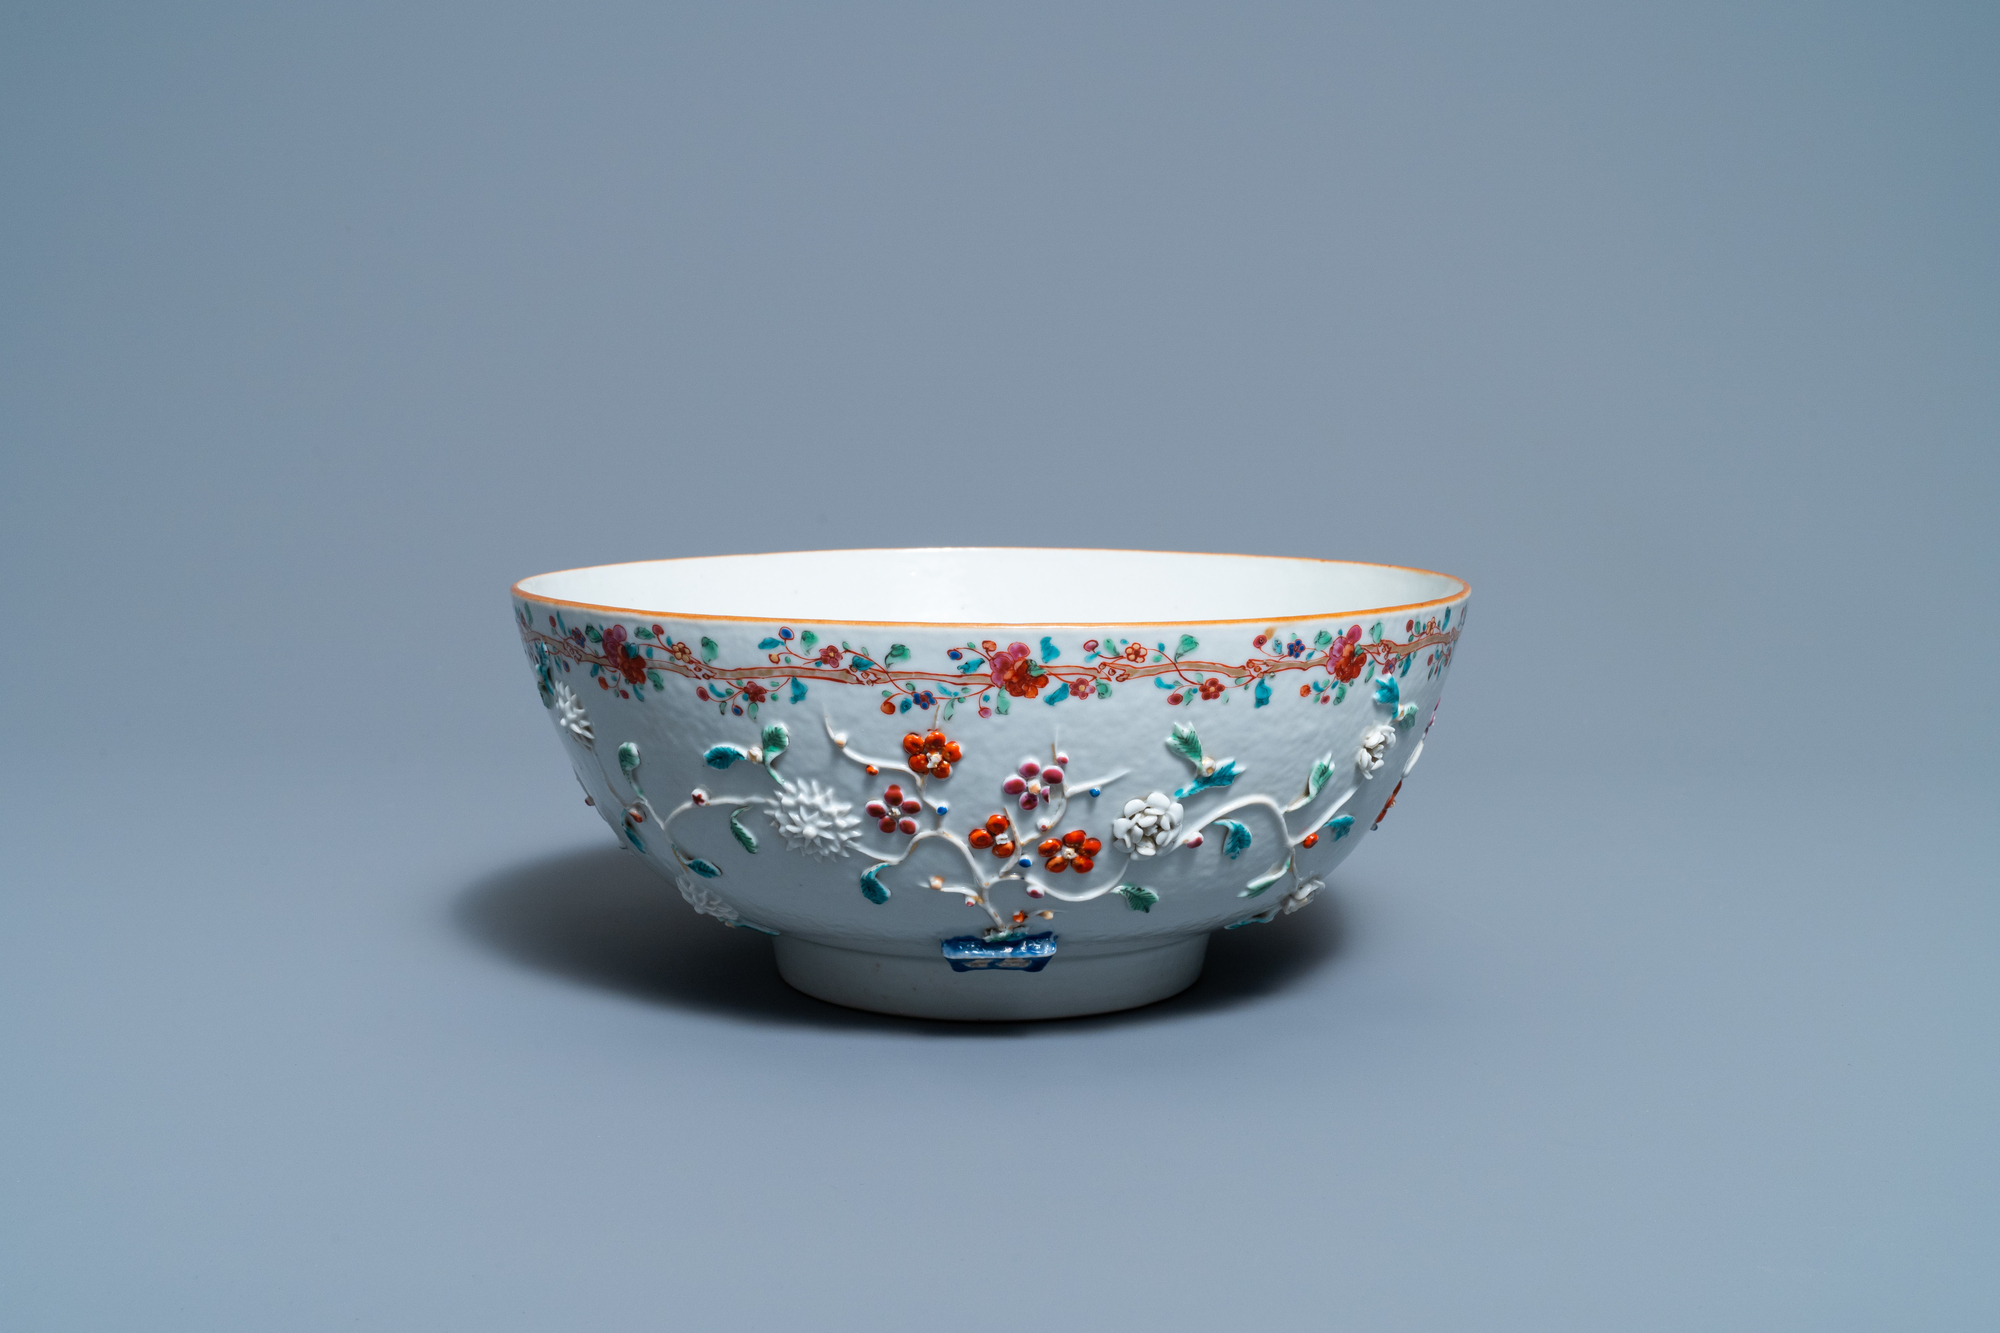 A Chinese famille rose relief-decorated floral bowl, Yongzheng/Qianlong